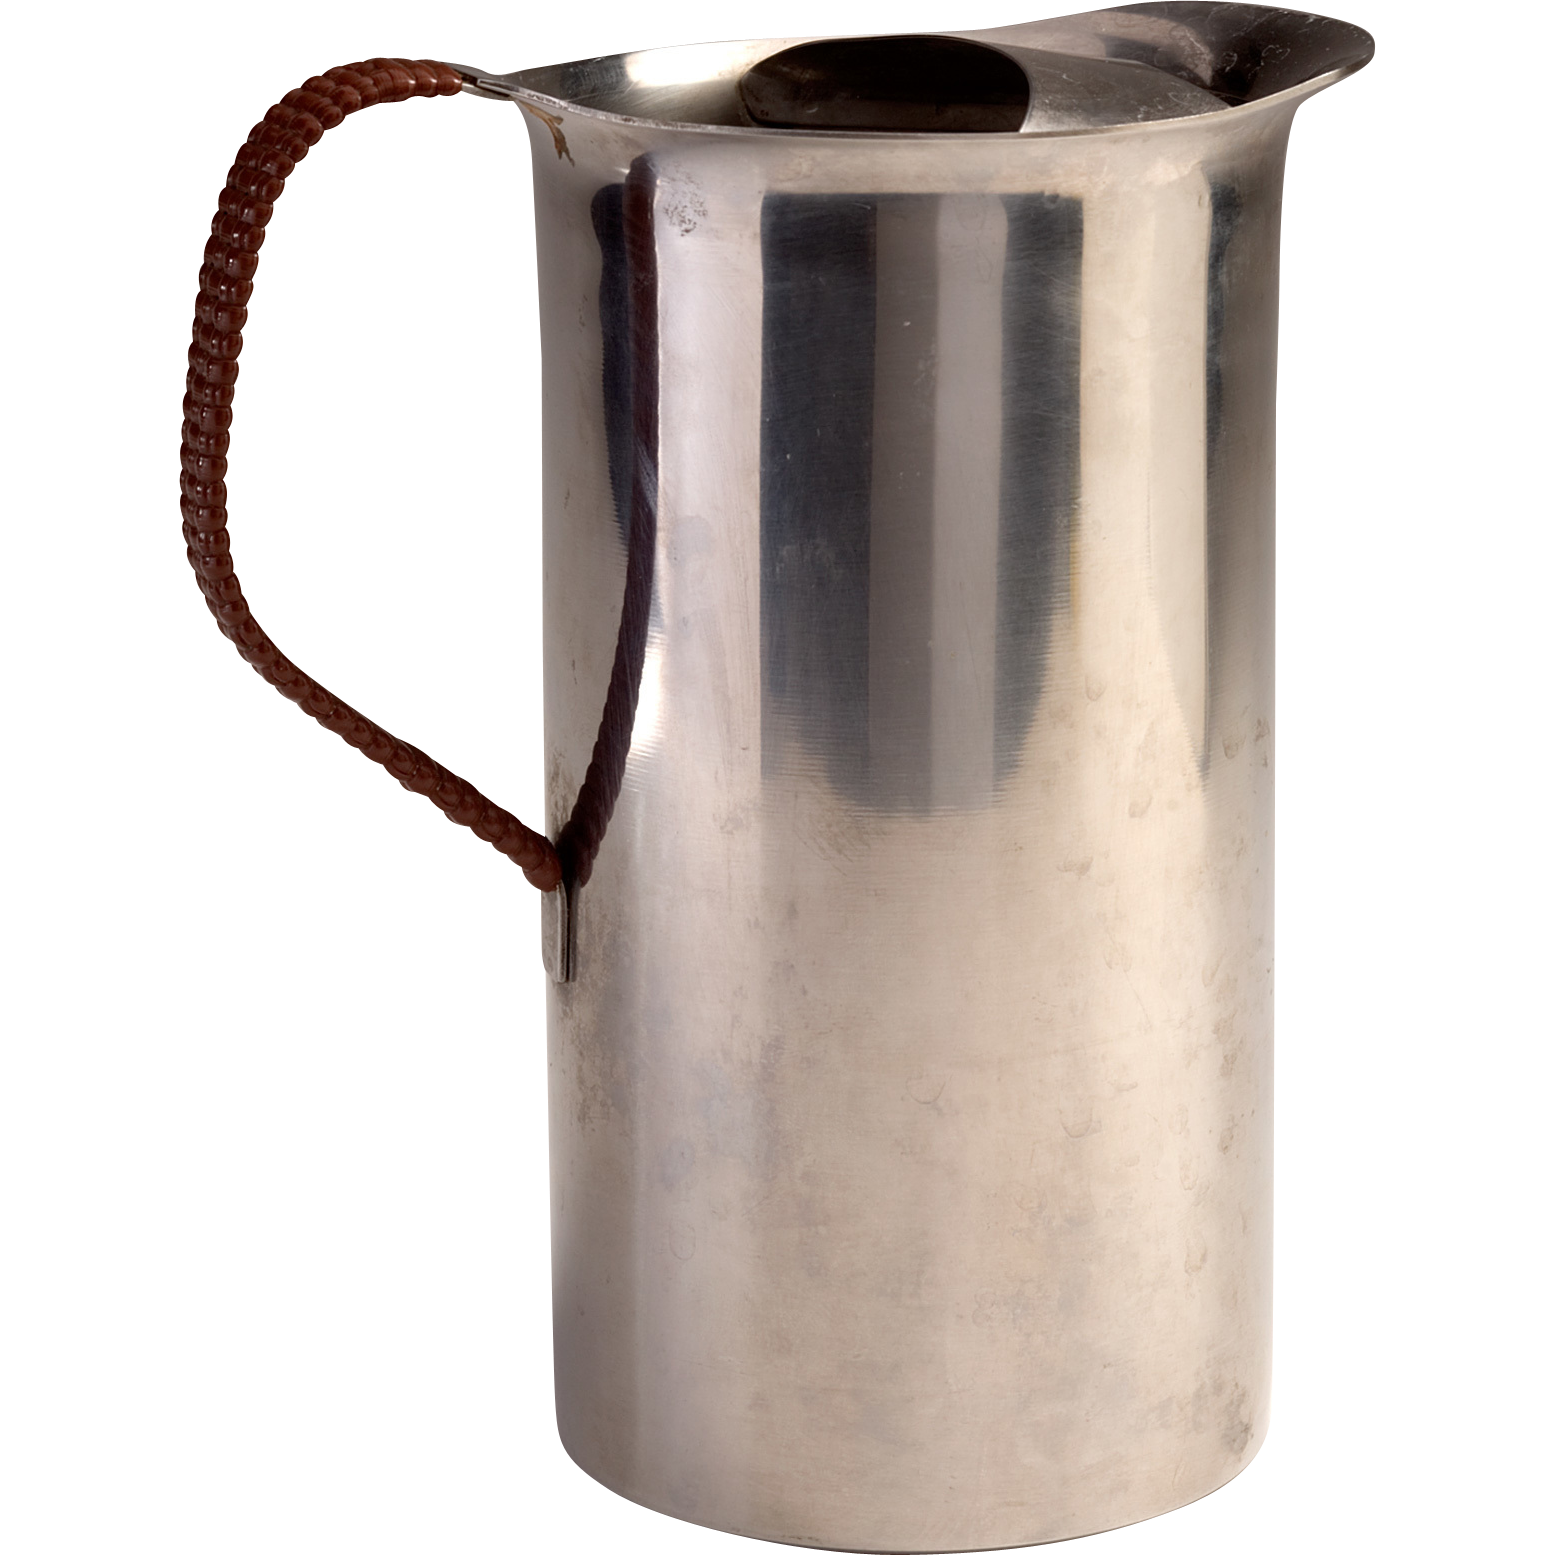 Aage Helbig Hansen Designed Scania Made in Denmark Stainless Pitcher